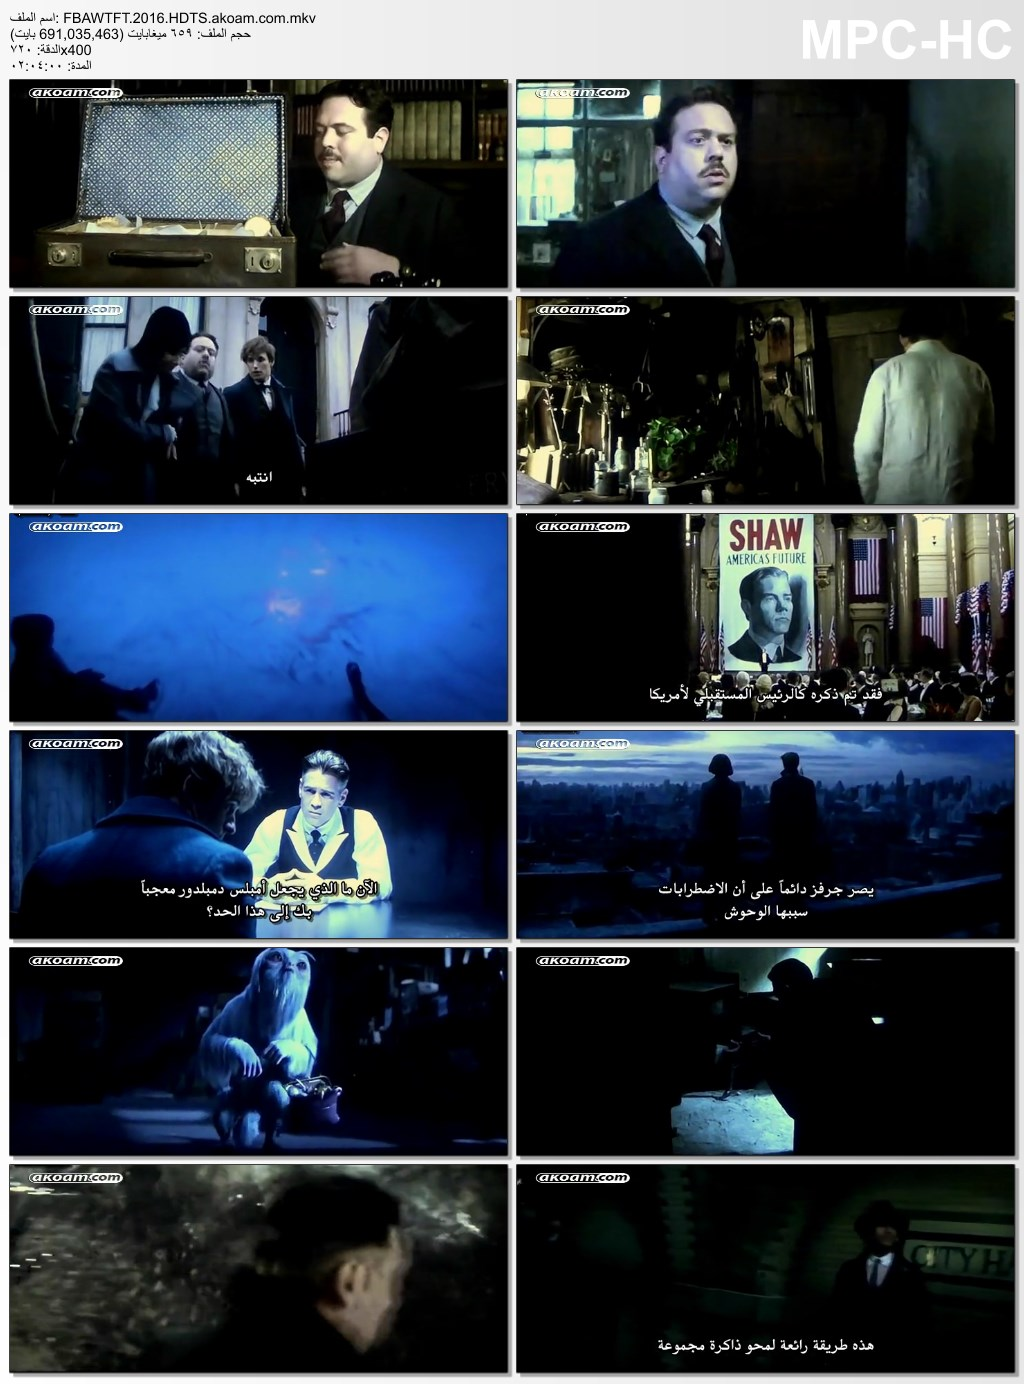 Fantastic Beasts and Where to Find Them,المغامرات,العائلي,الفانتازيا